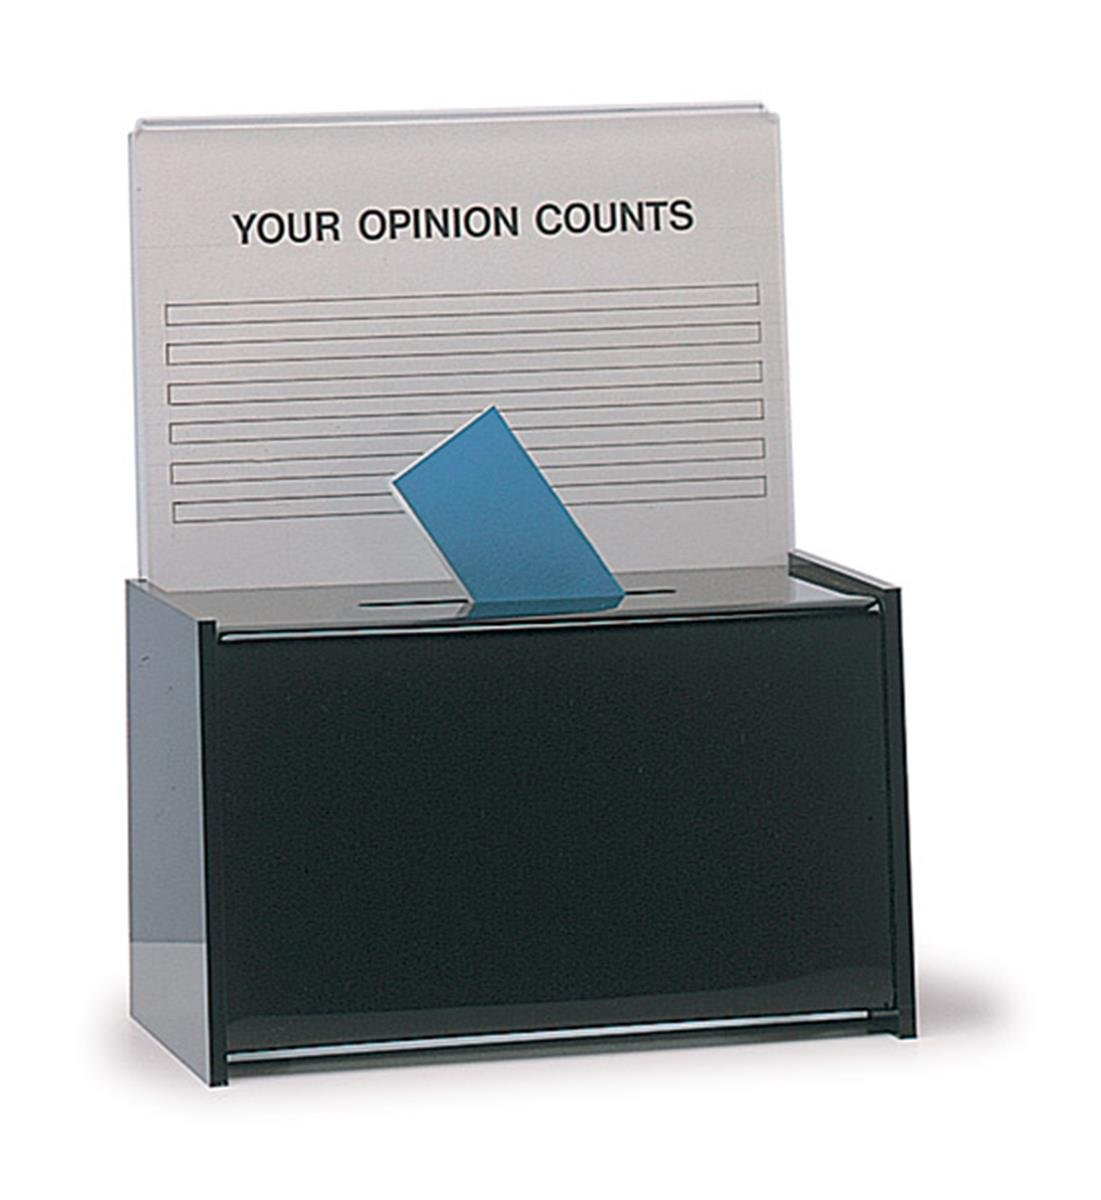 Displays2go Small Acrylic Ballot Box with 8.5x5.5 Header for Tabletop Use, Black (SBB)